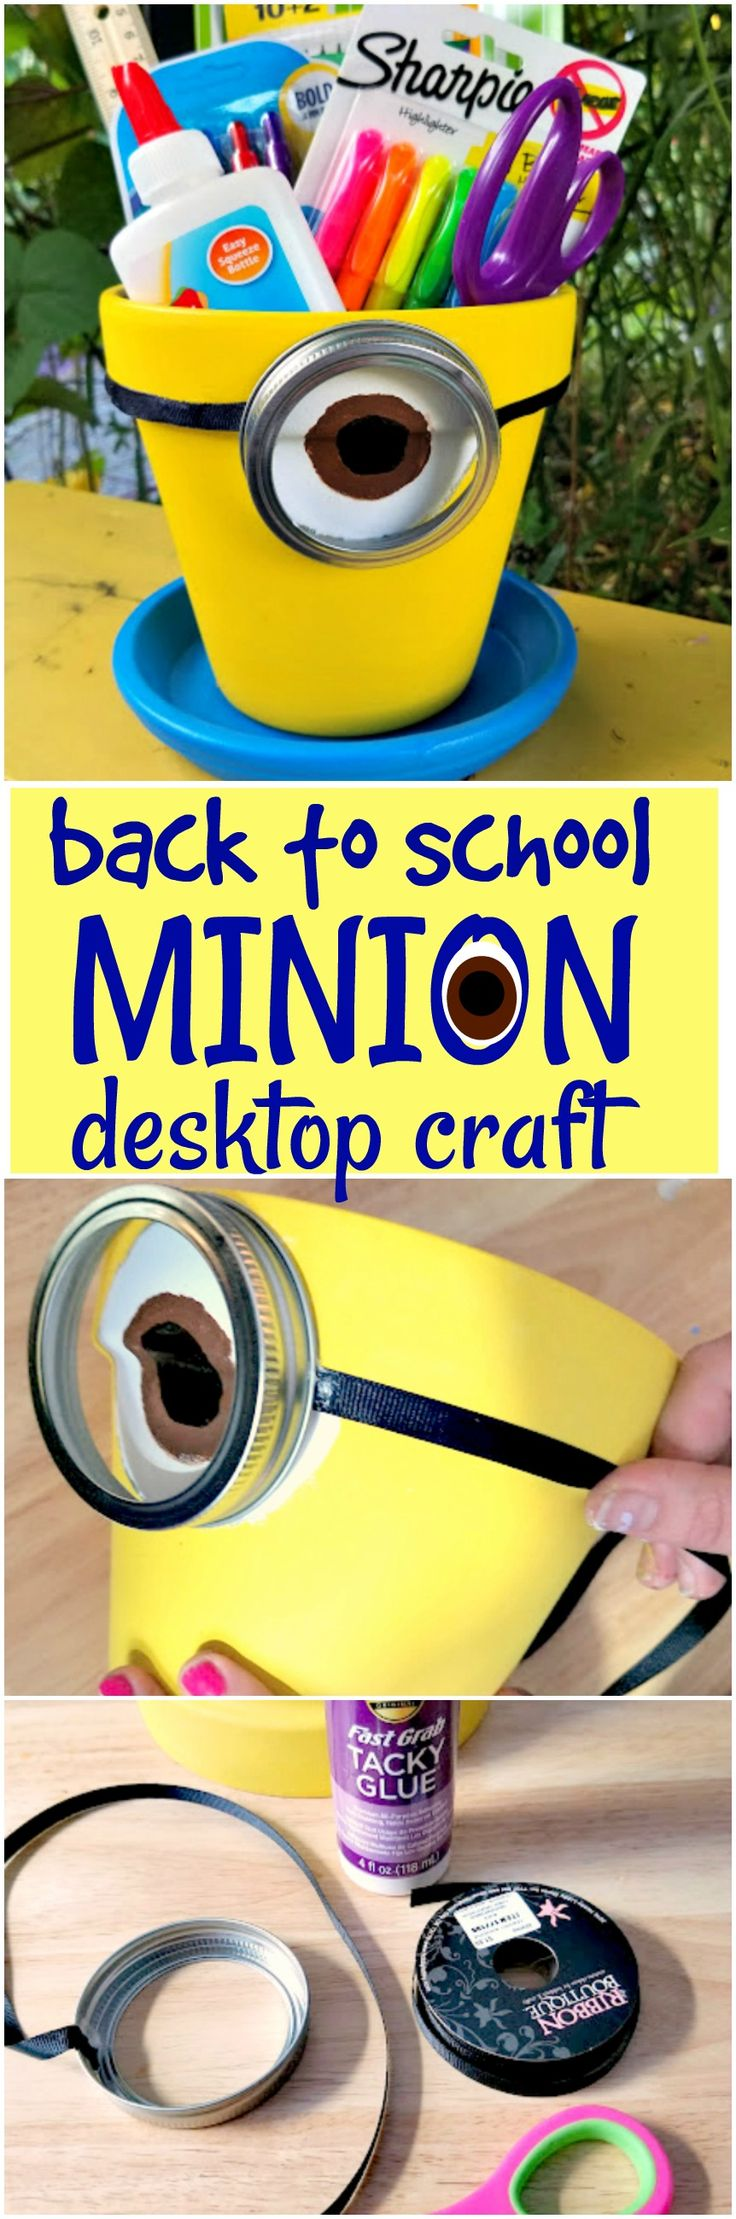 Back to school craft. Keep them busy and get them excited for back to school with this fun and easy Minions craft! A desktop school supplies storage pot.